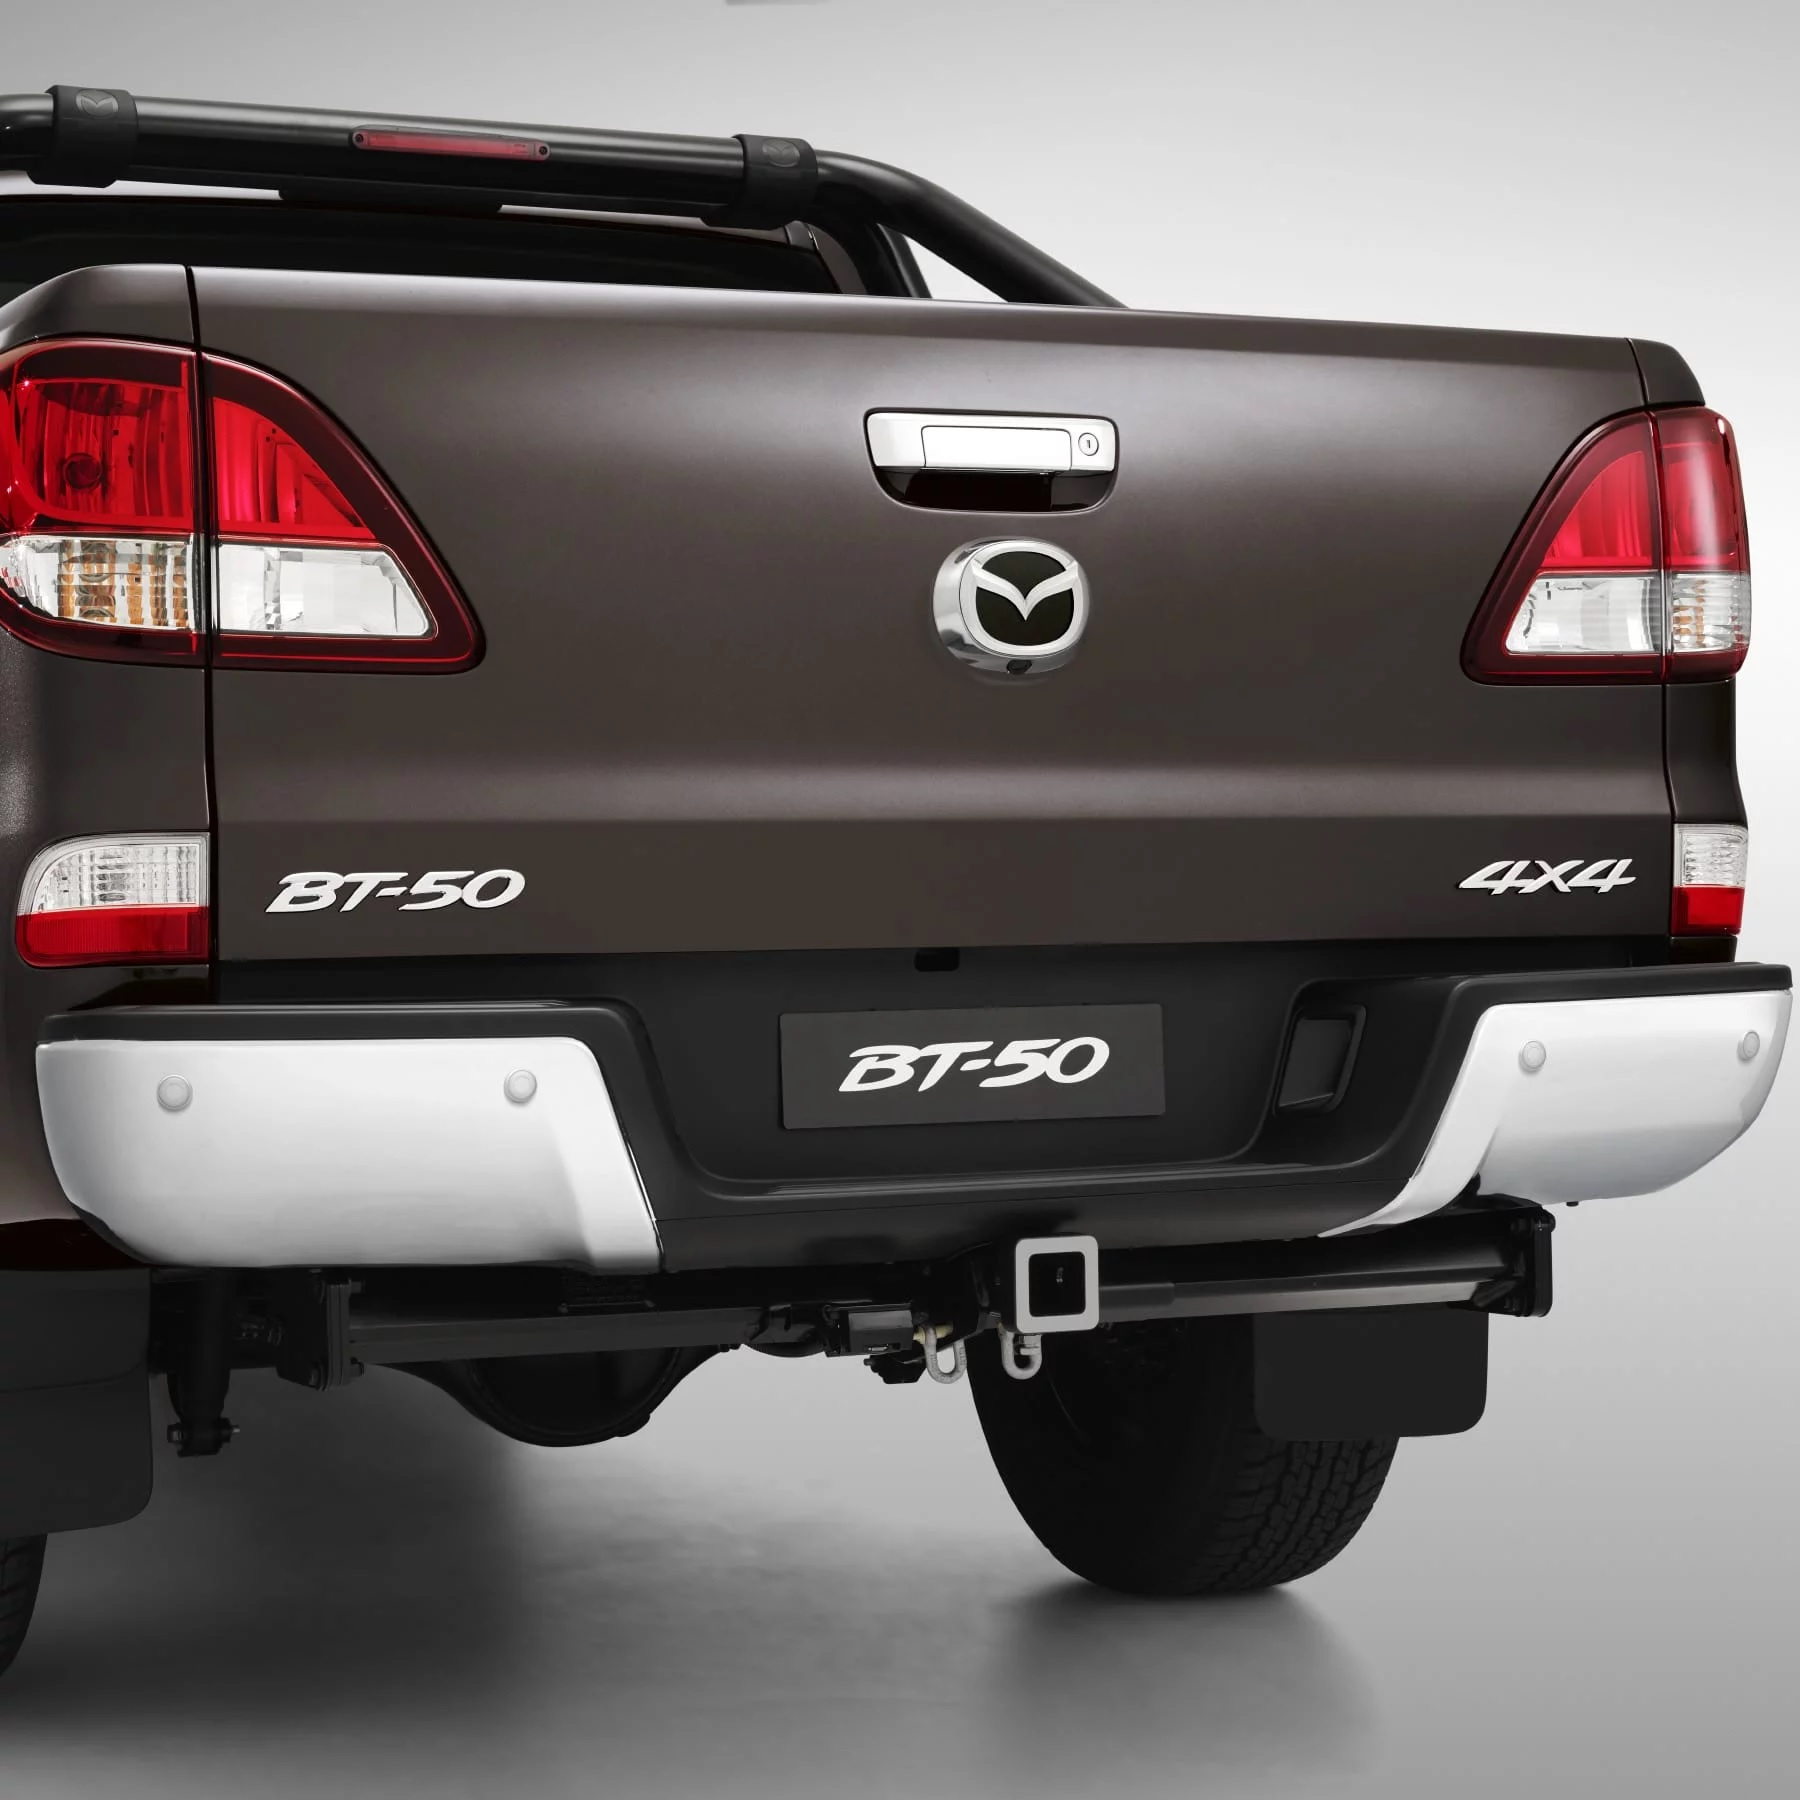 hight resolution of details about new genuine mazda bt 50 up ur towbar trailer wiring harness bt50 ute ur11actwh